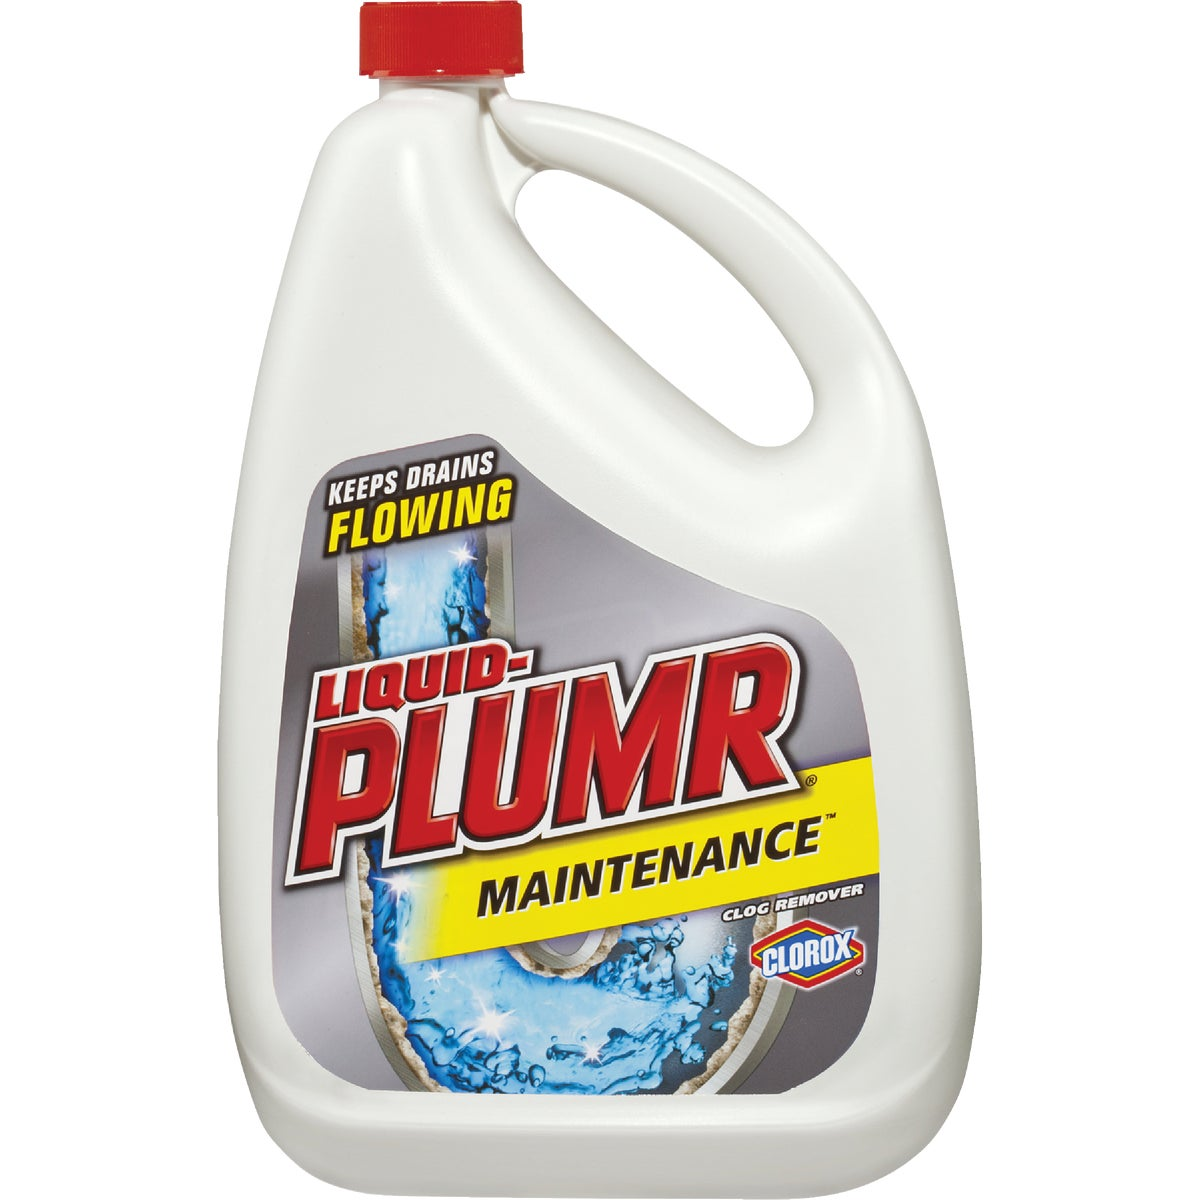 80OZ MAINT LIQUID PLUMR - 00229 by Clorox/home Cleaning